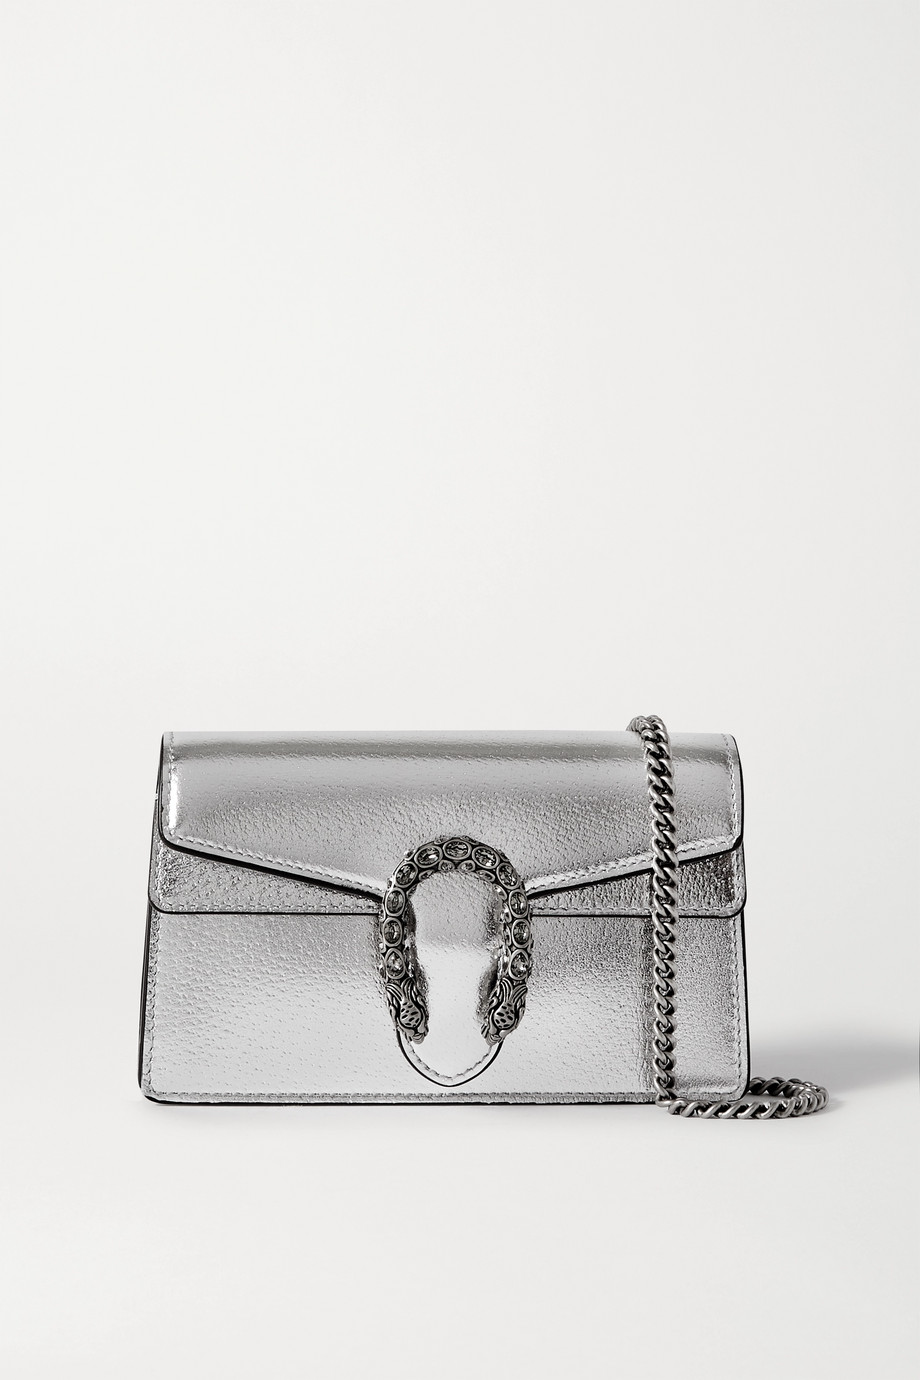 Gucci Dionysus super mini metallic leather shoulder bag